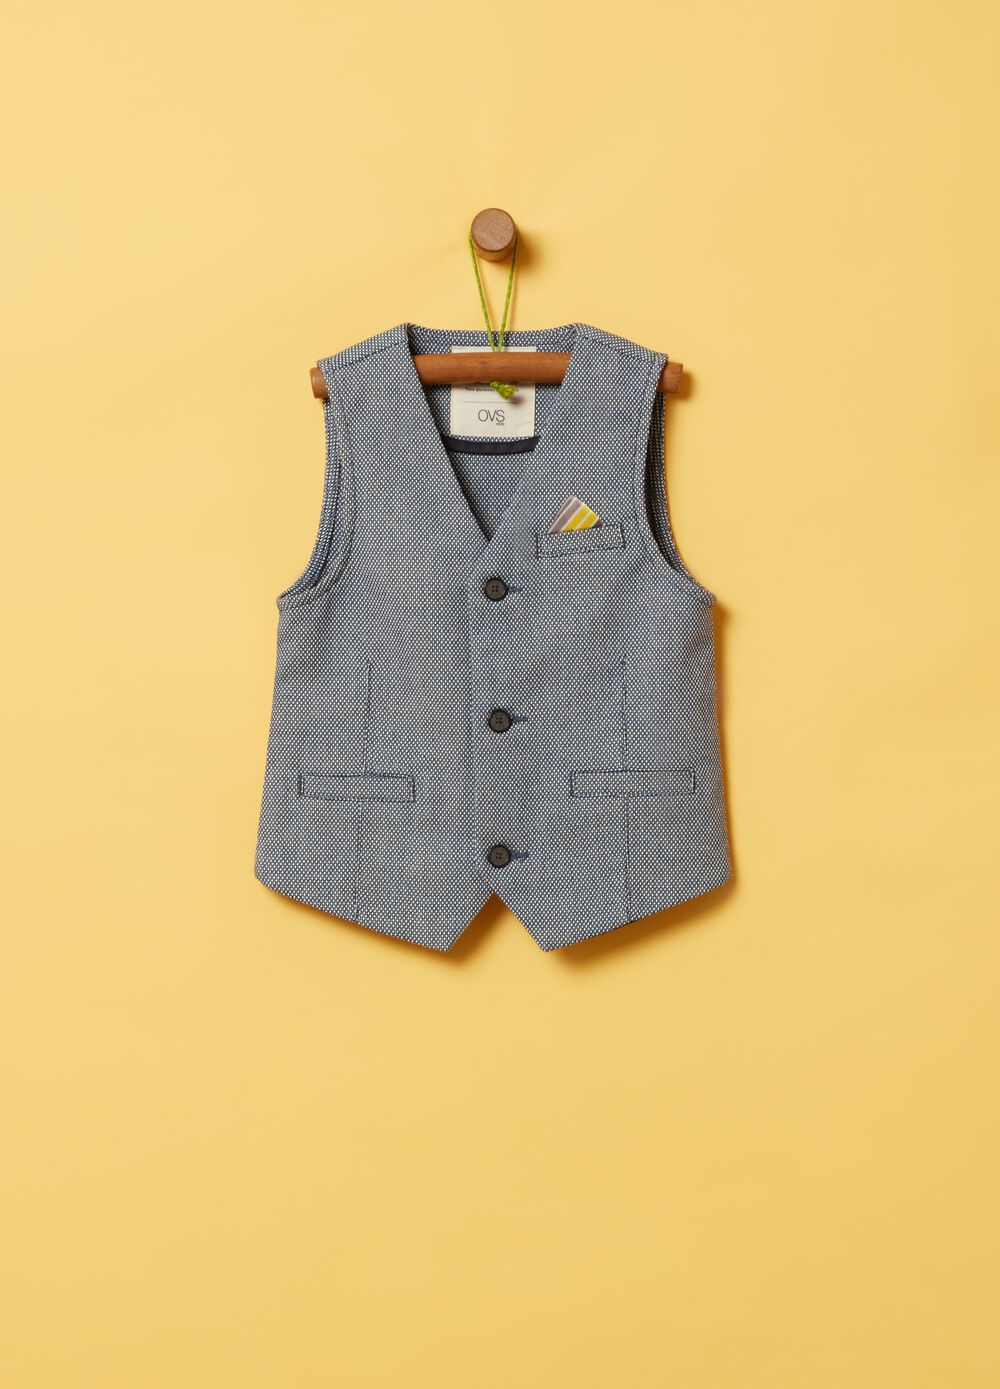 Fabric gilet with pockets